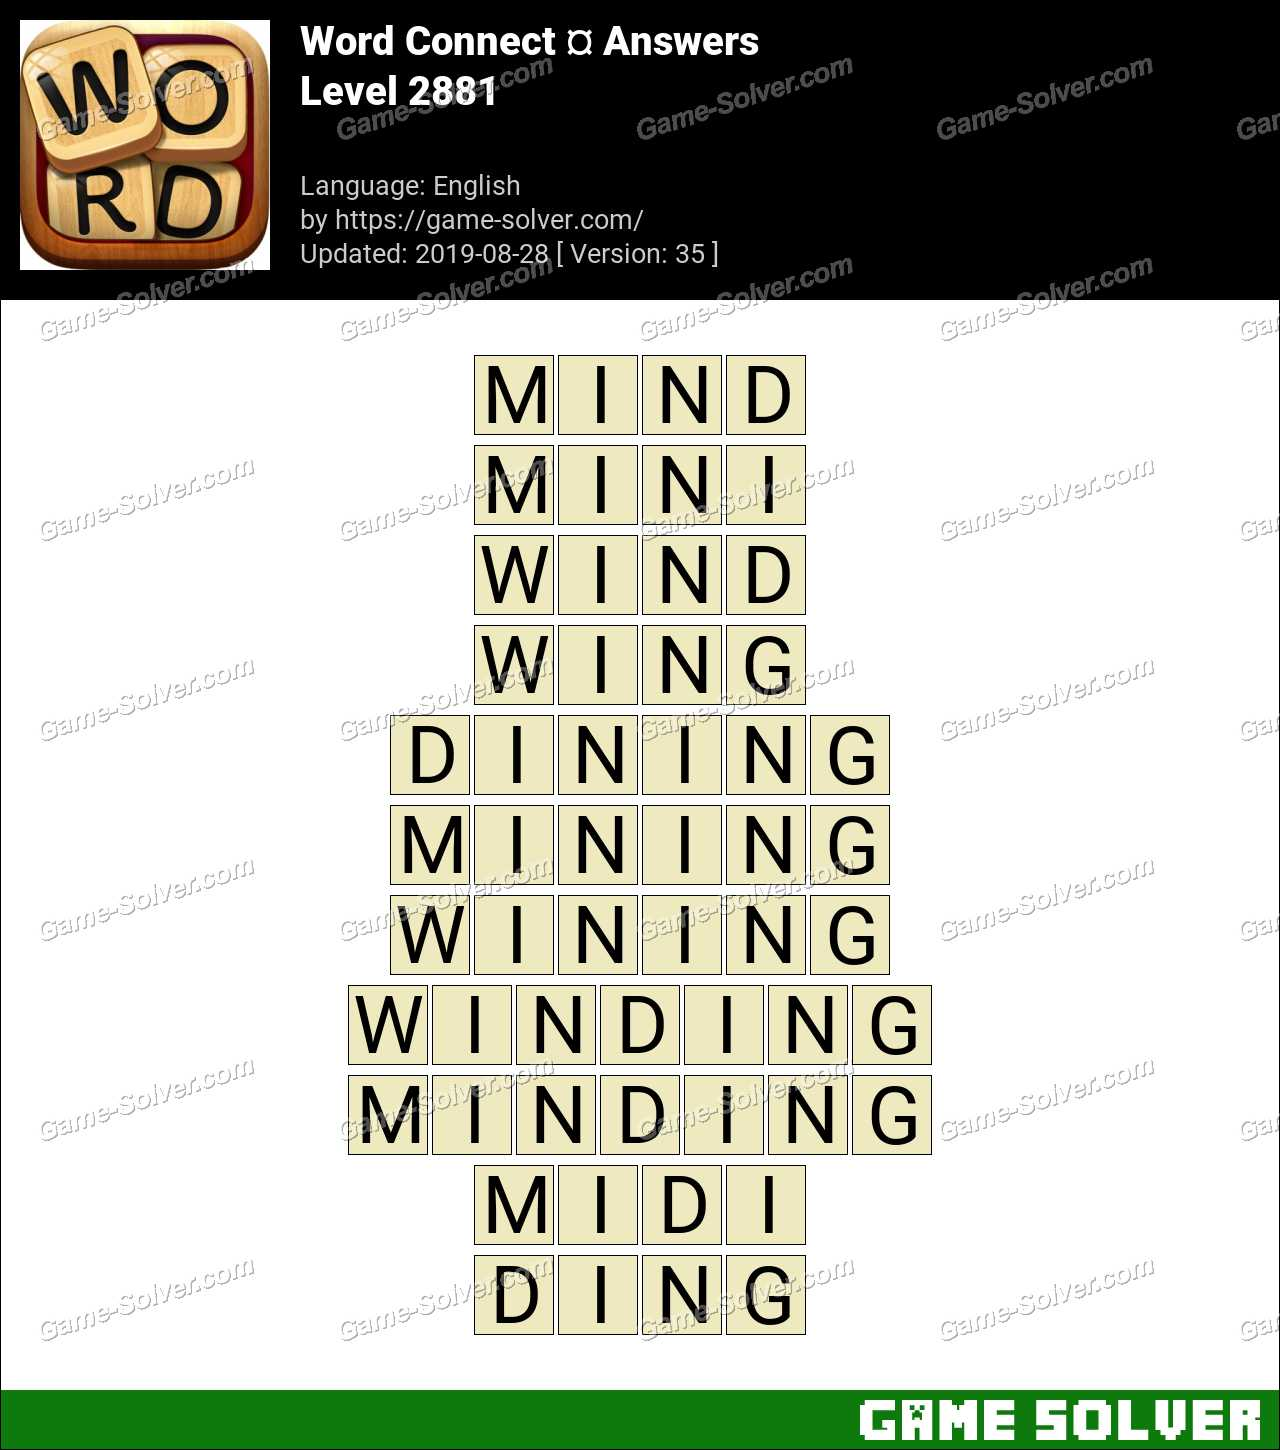 Word Connect Level 2881 Answers